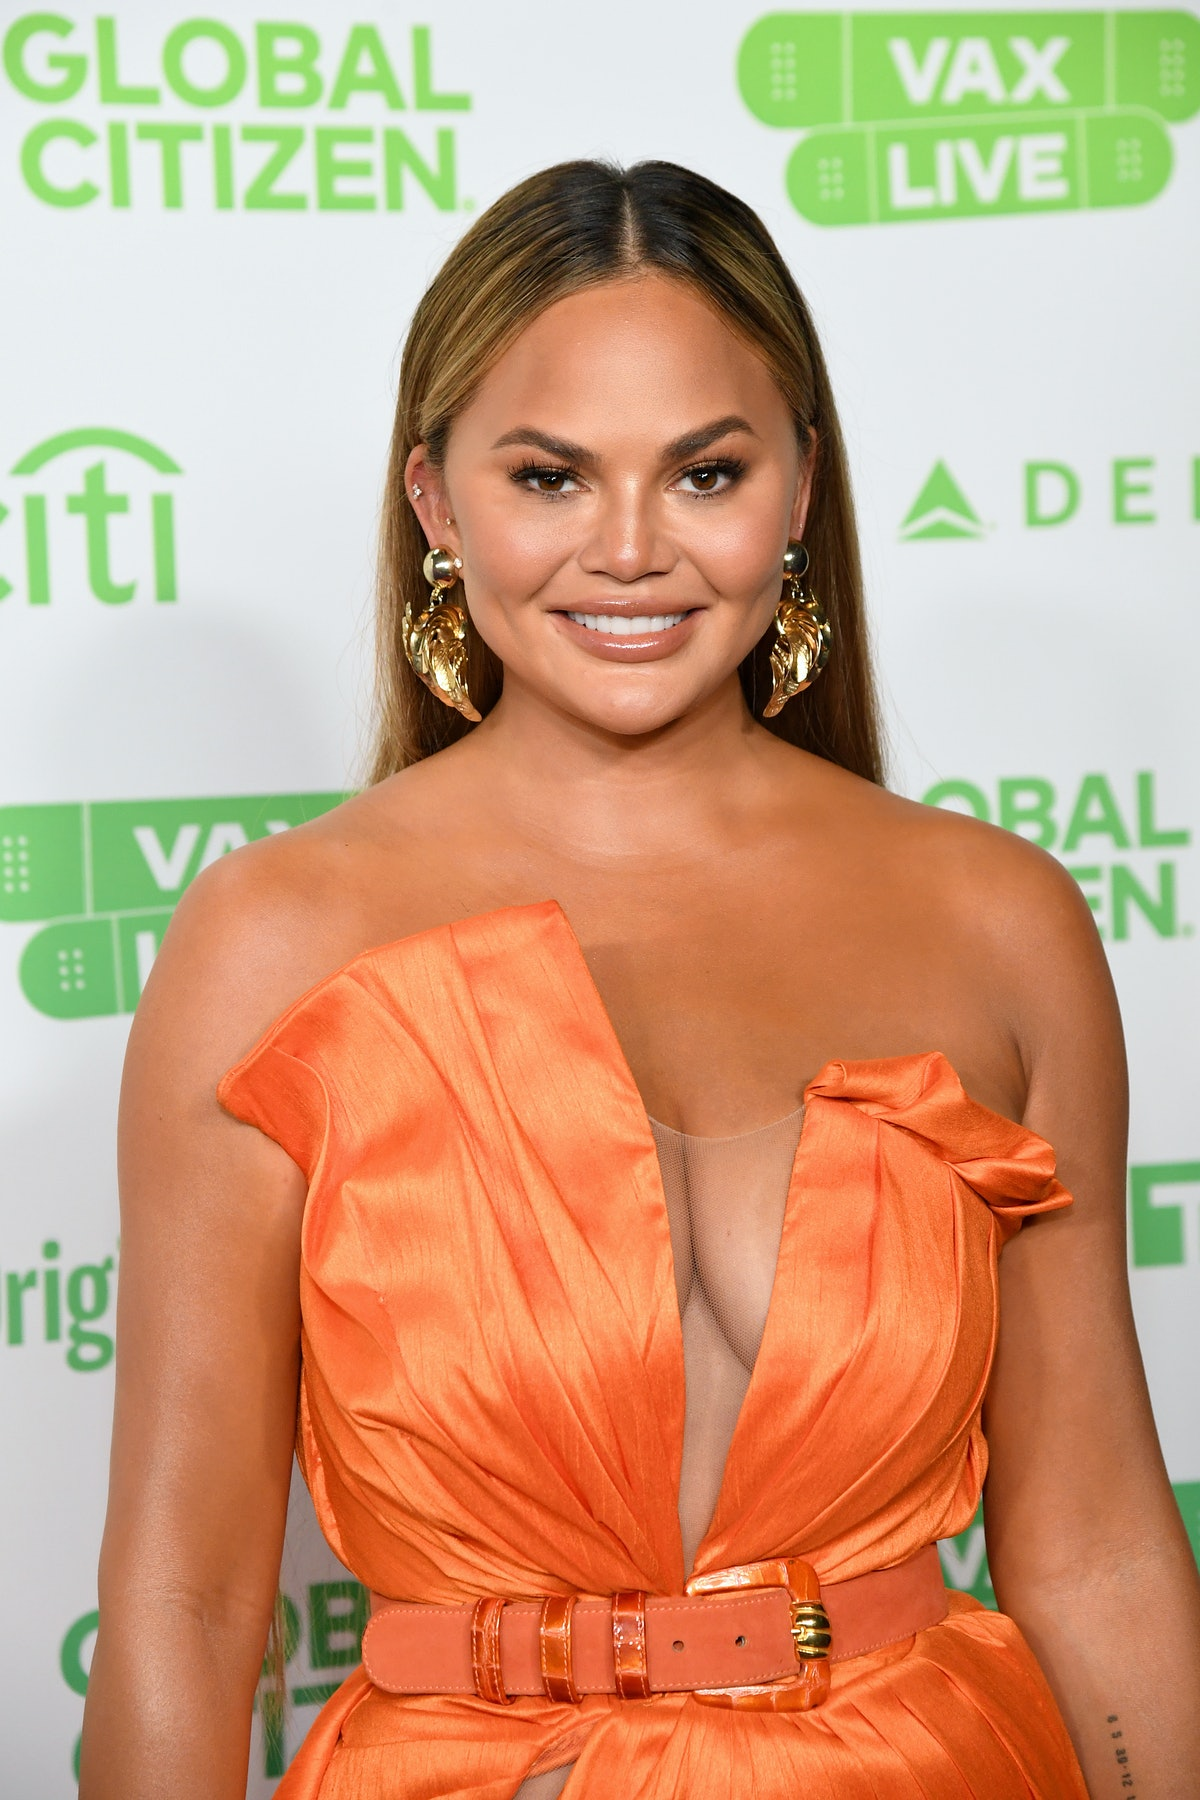 INGLEWOOD, CALIFORNIA: In this image released on May 2, Chrissy Teigen attends Global Citizen VAX LI...